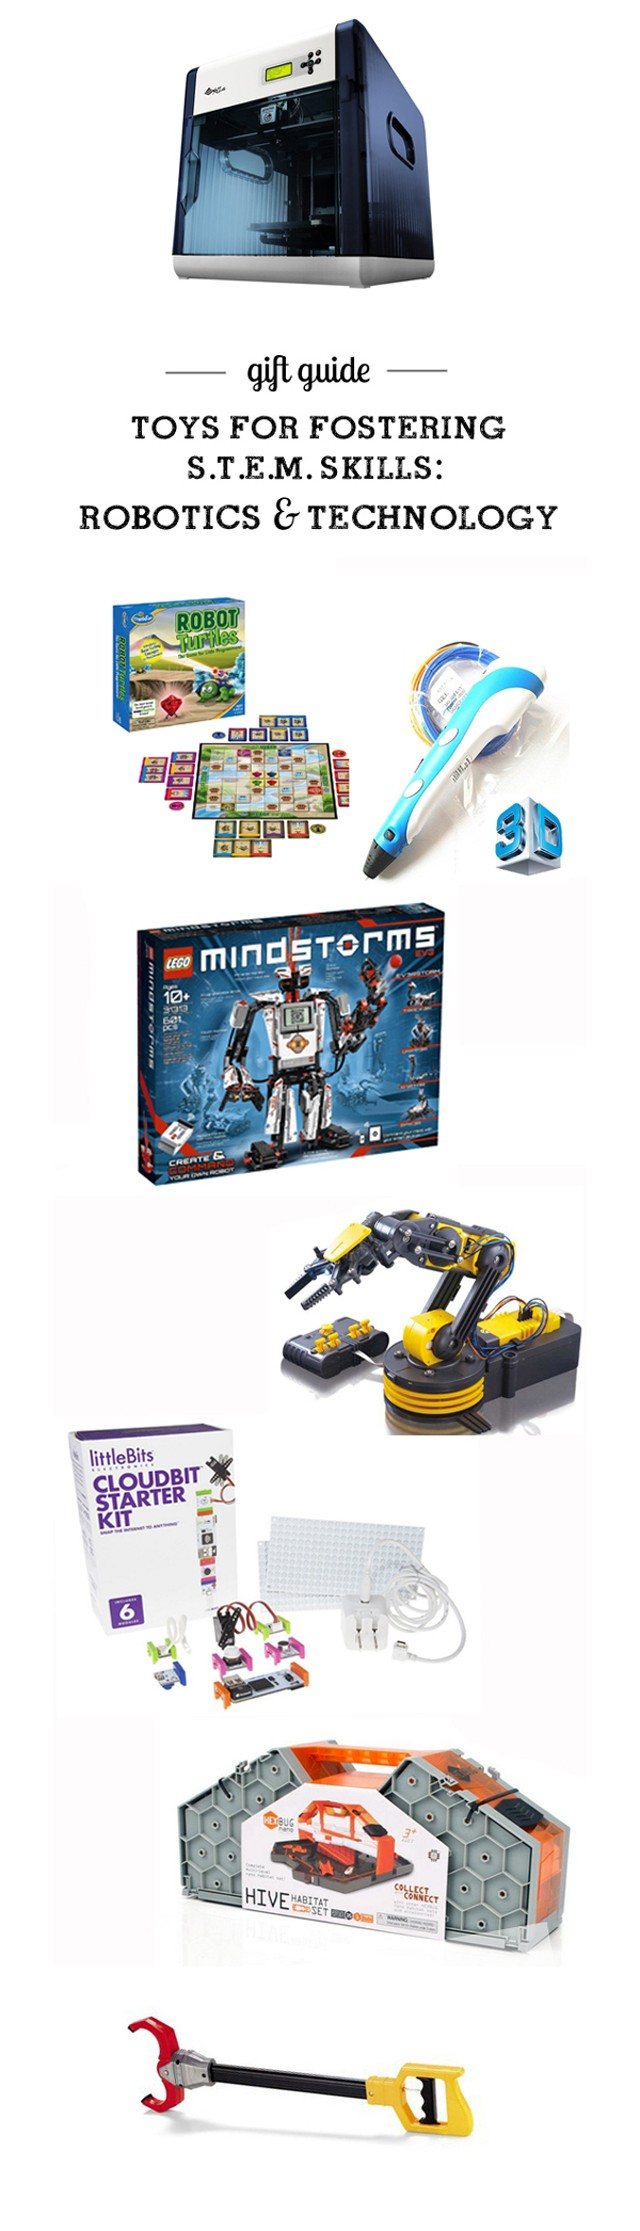 MPMK Toy Gift Guide: Top STEM Tous (Science, Technology, Engineering, & Math) for all ages - so many cool picks I'd never thought of and I love, LOVE the detailed descriptions and age recommendations. Such an amazing resource!